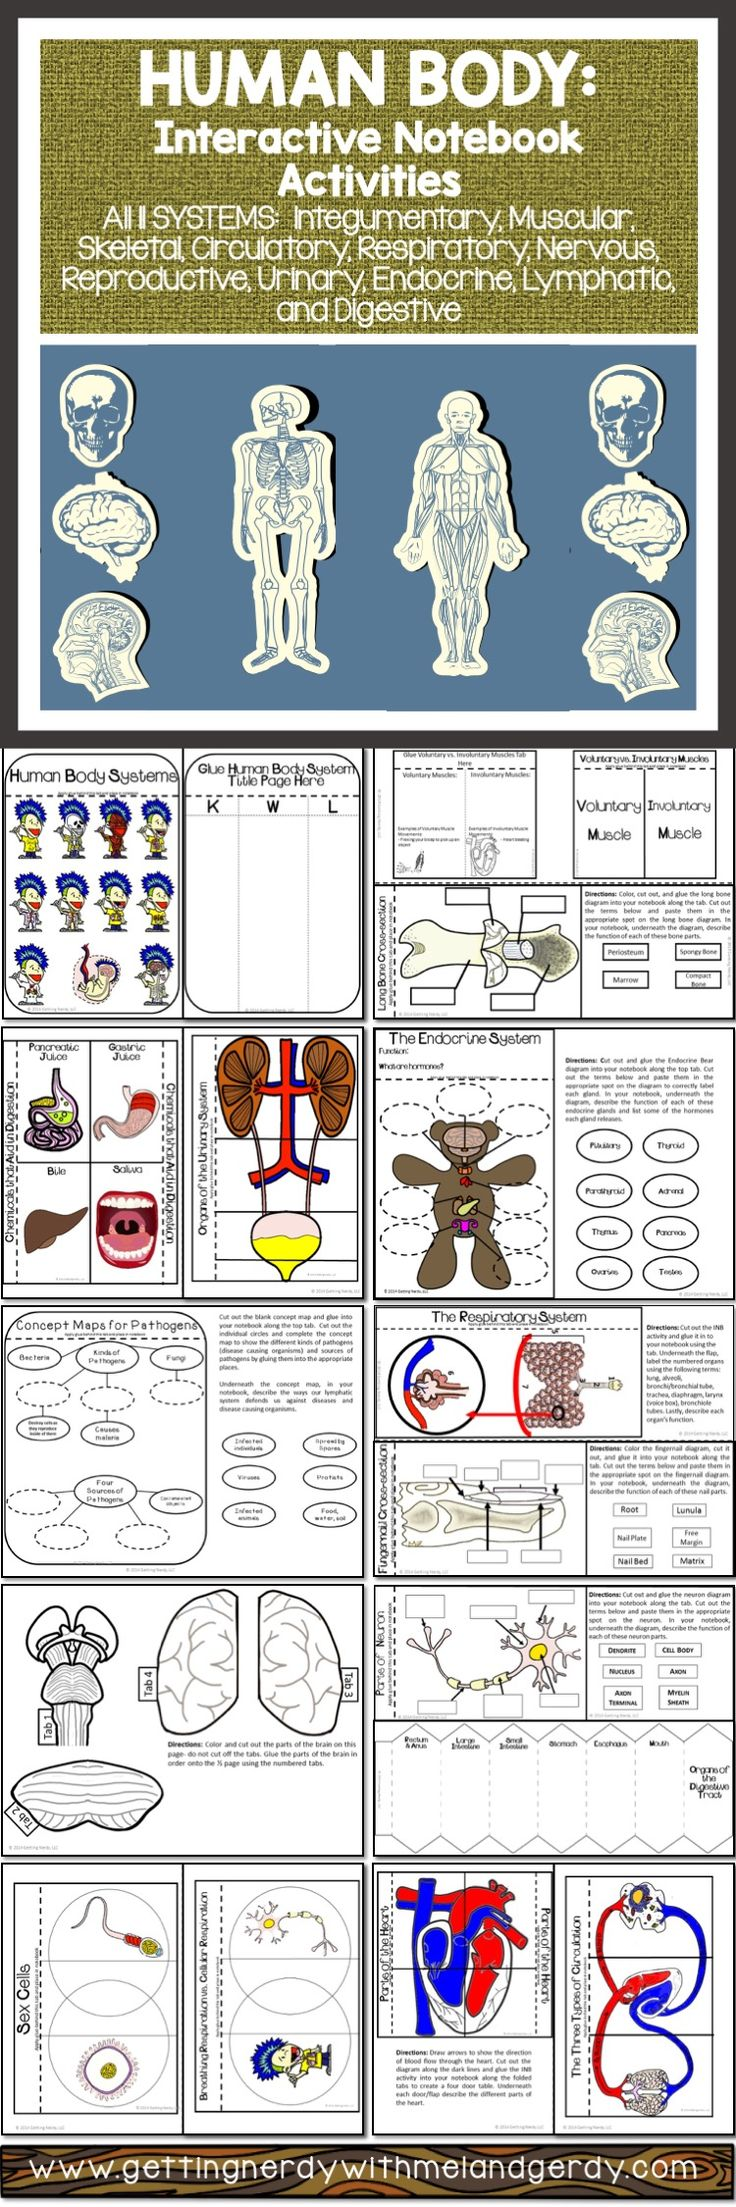 Human Body Systems Interactive Notebook Activity Pack Biology